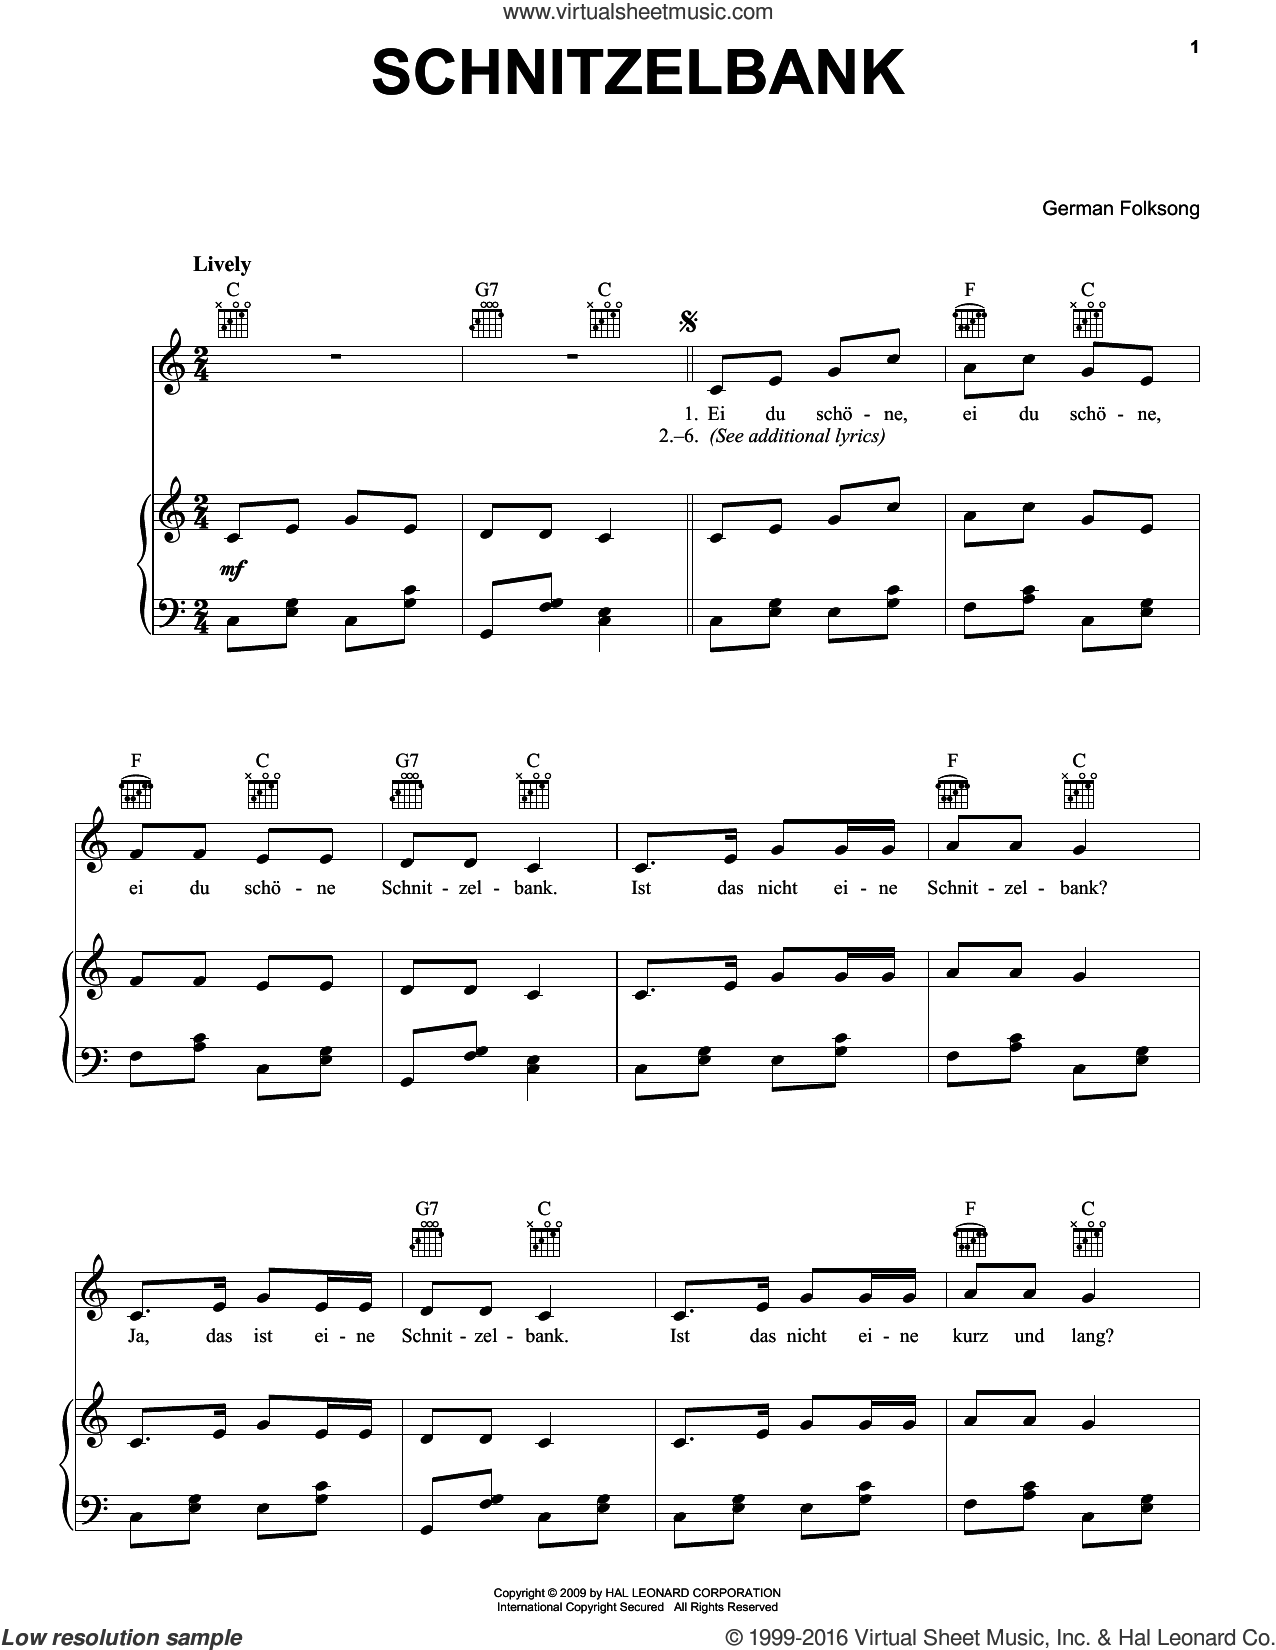 Schnitzelbank sheet music for voice, piano or guitar. Score Image Preview.